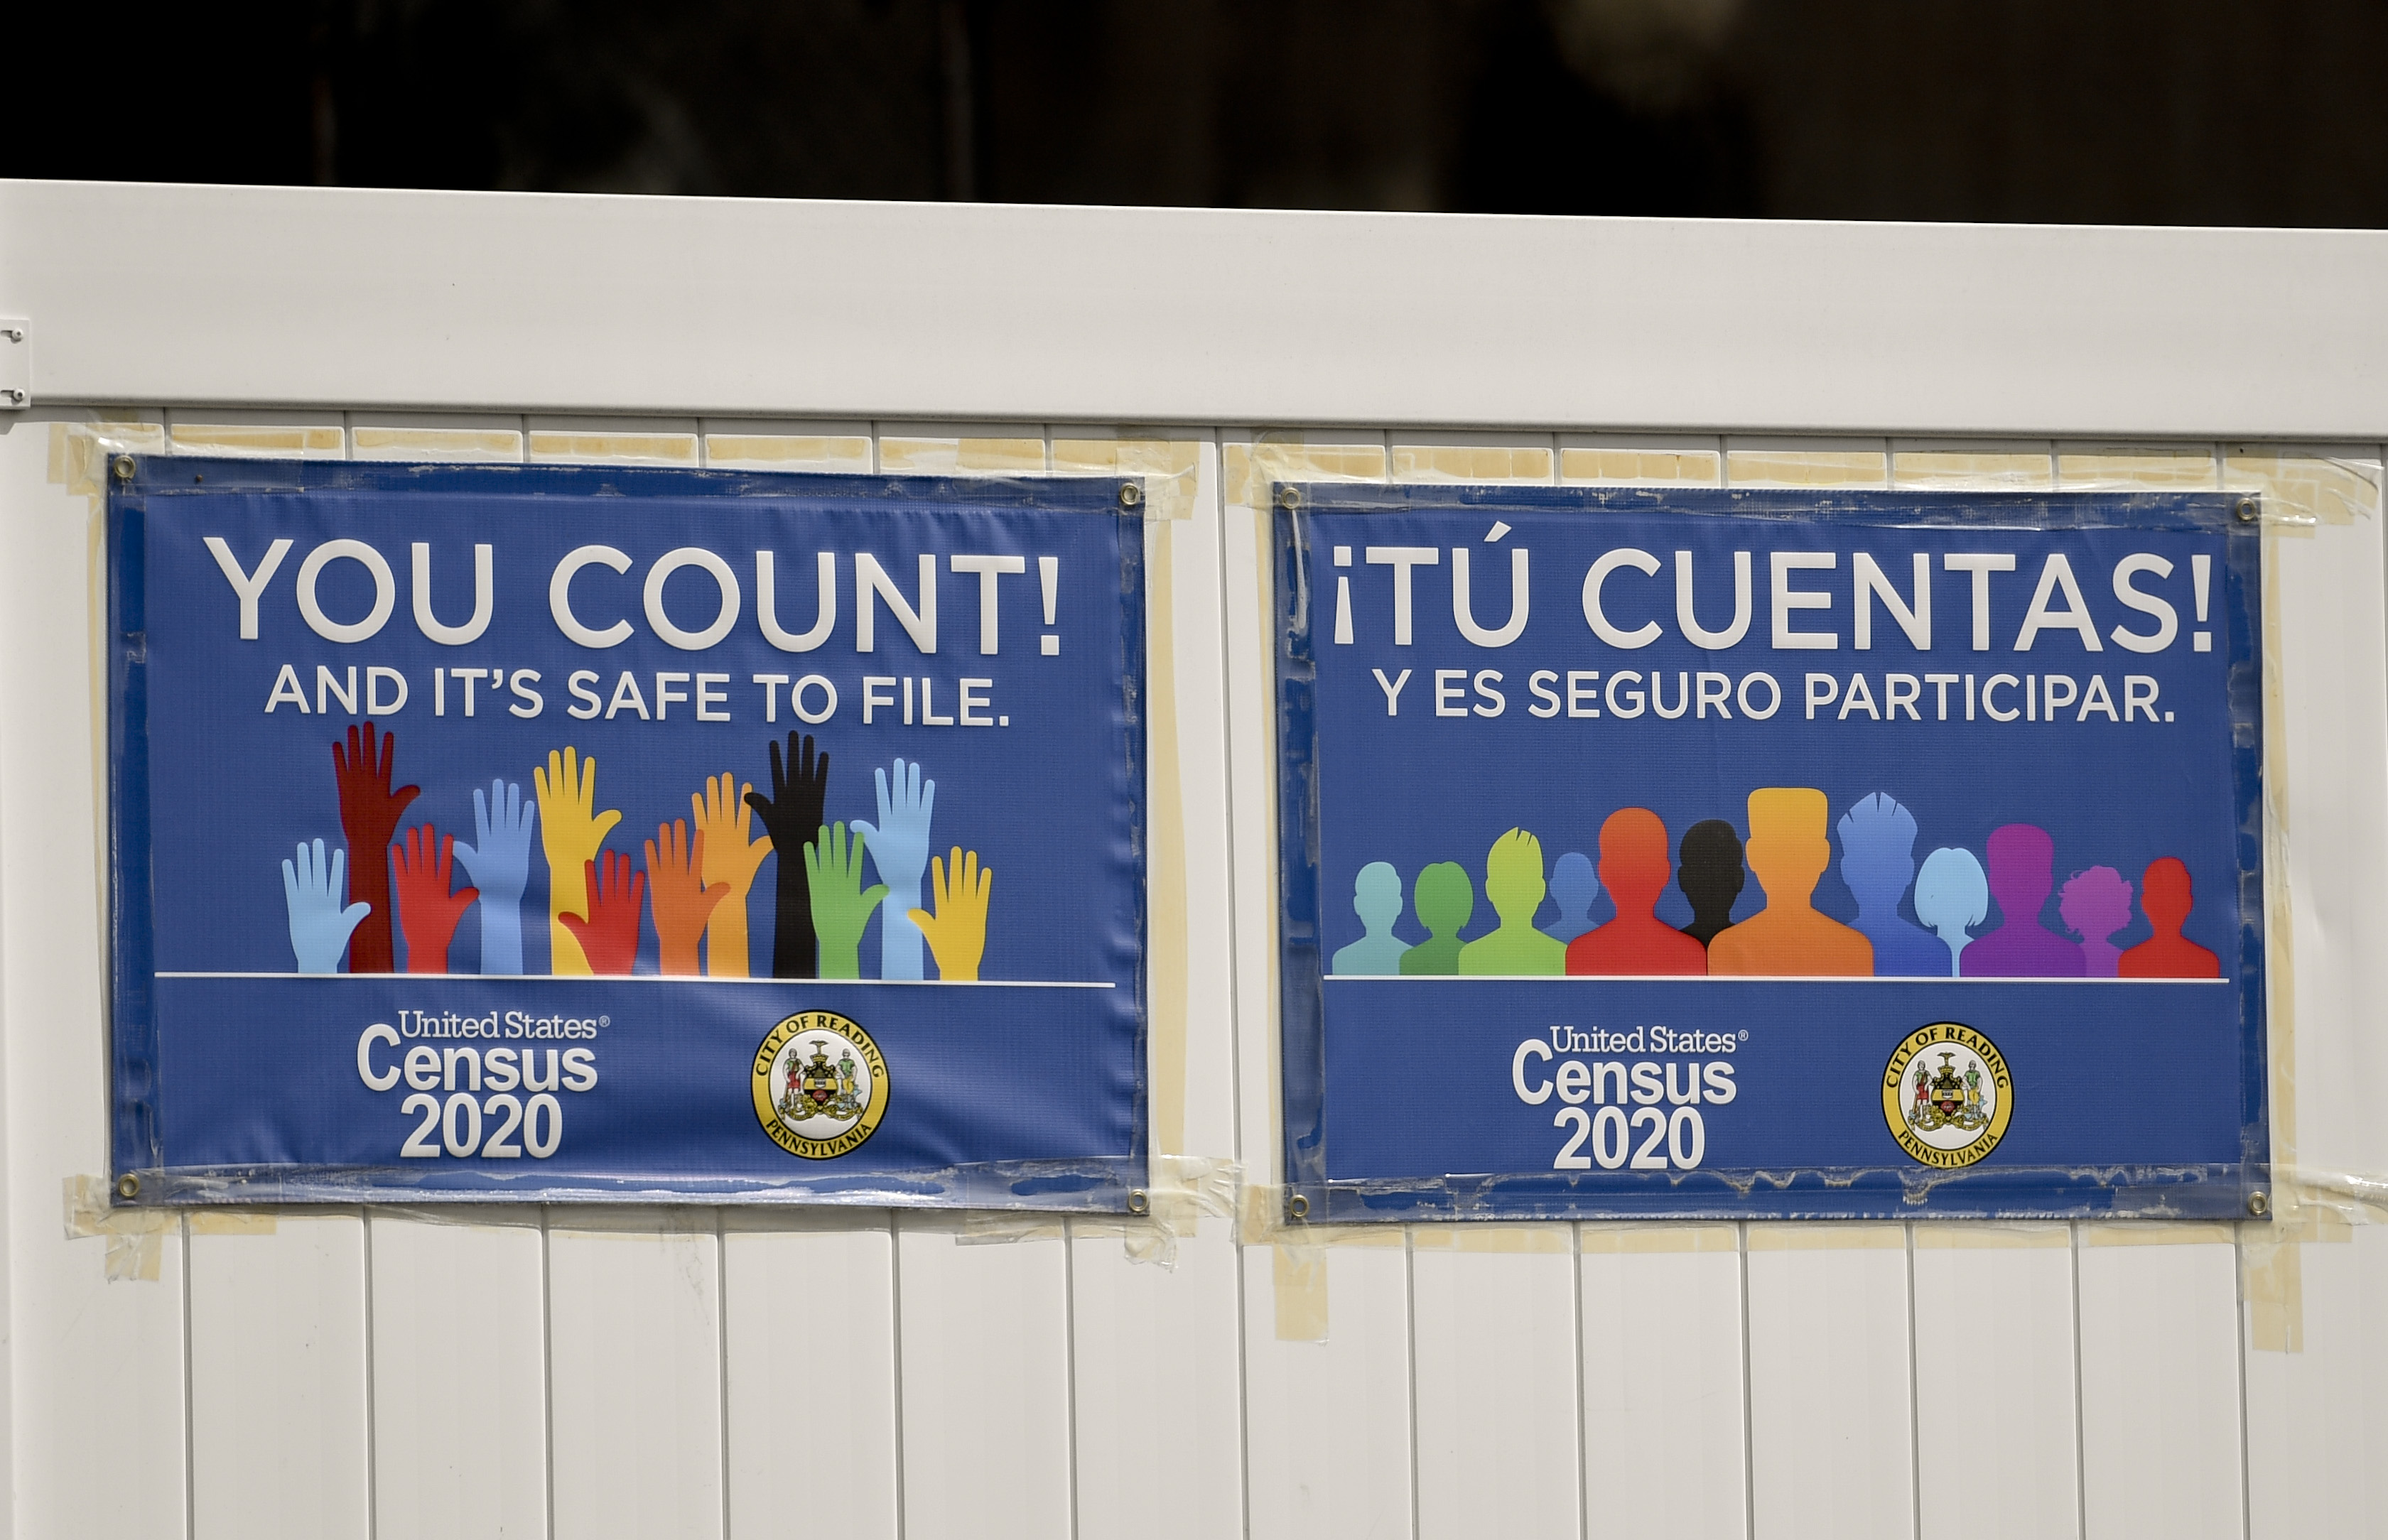 """The signs read, """"You Count! And it's safe to file. Census 2020."""""""